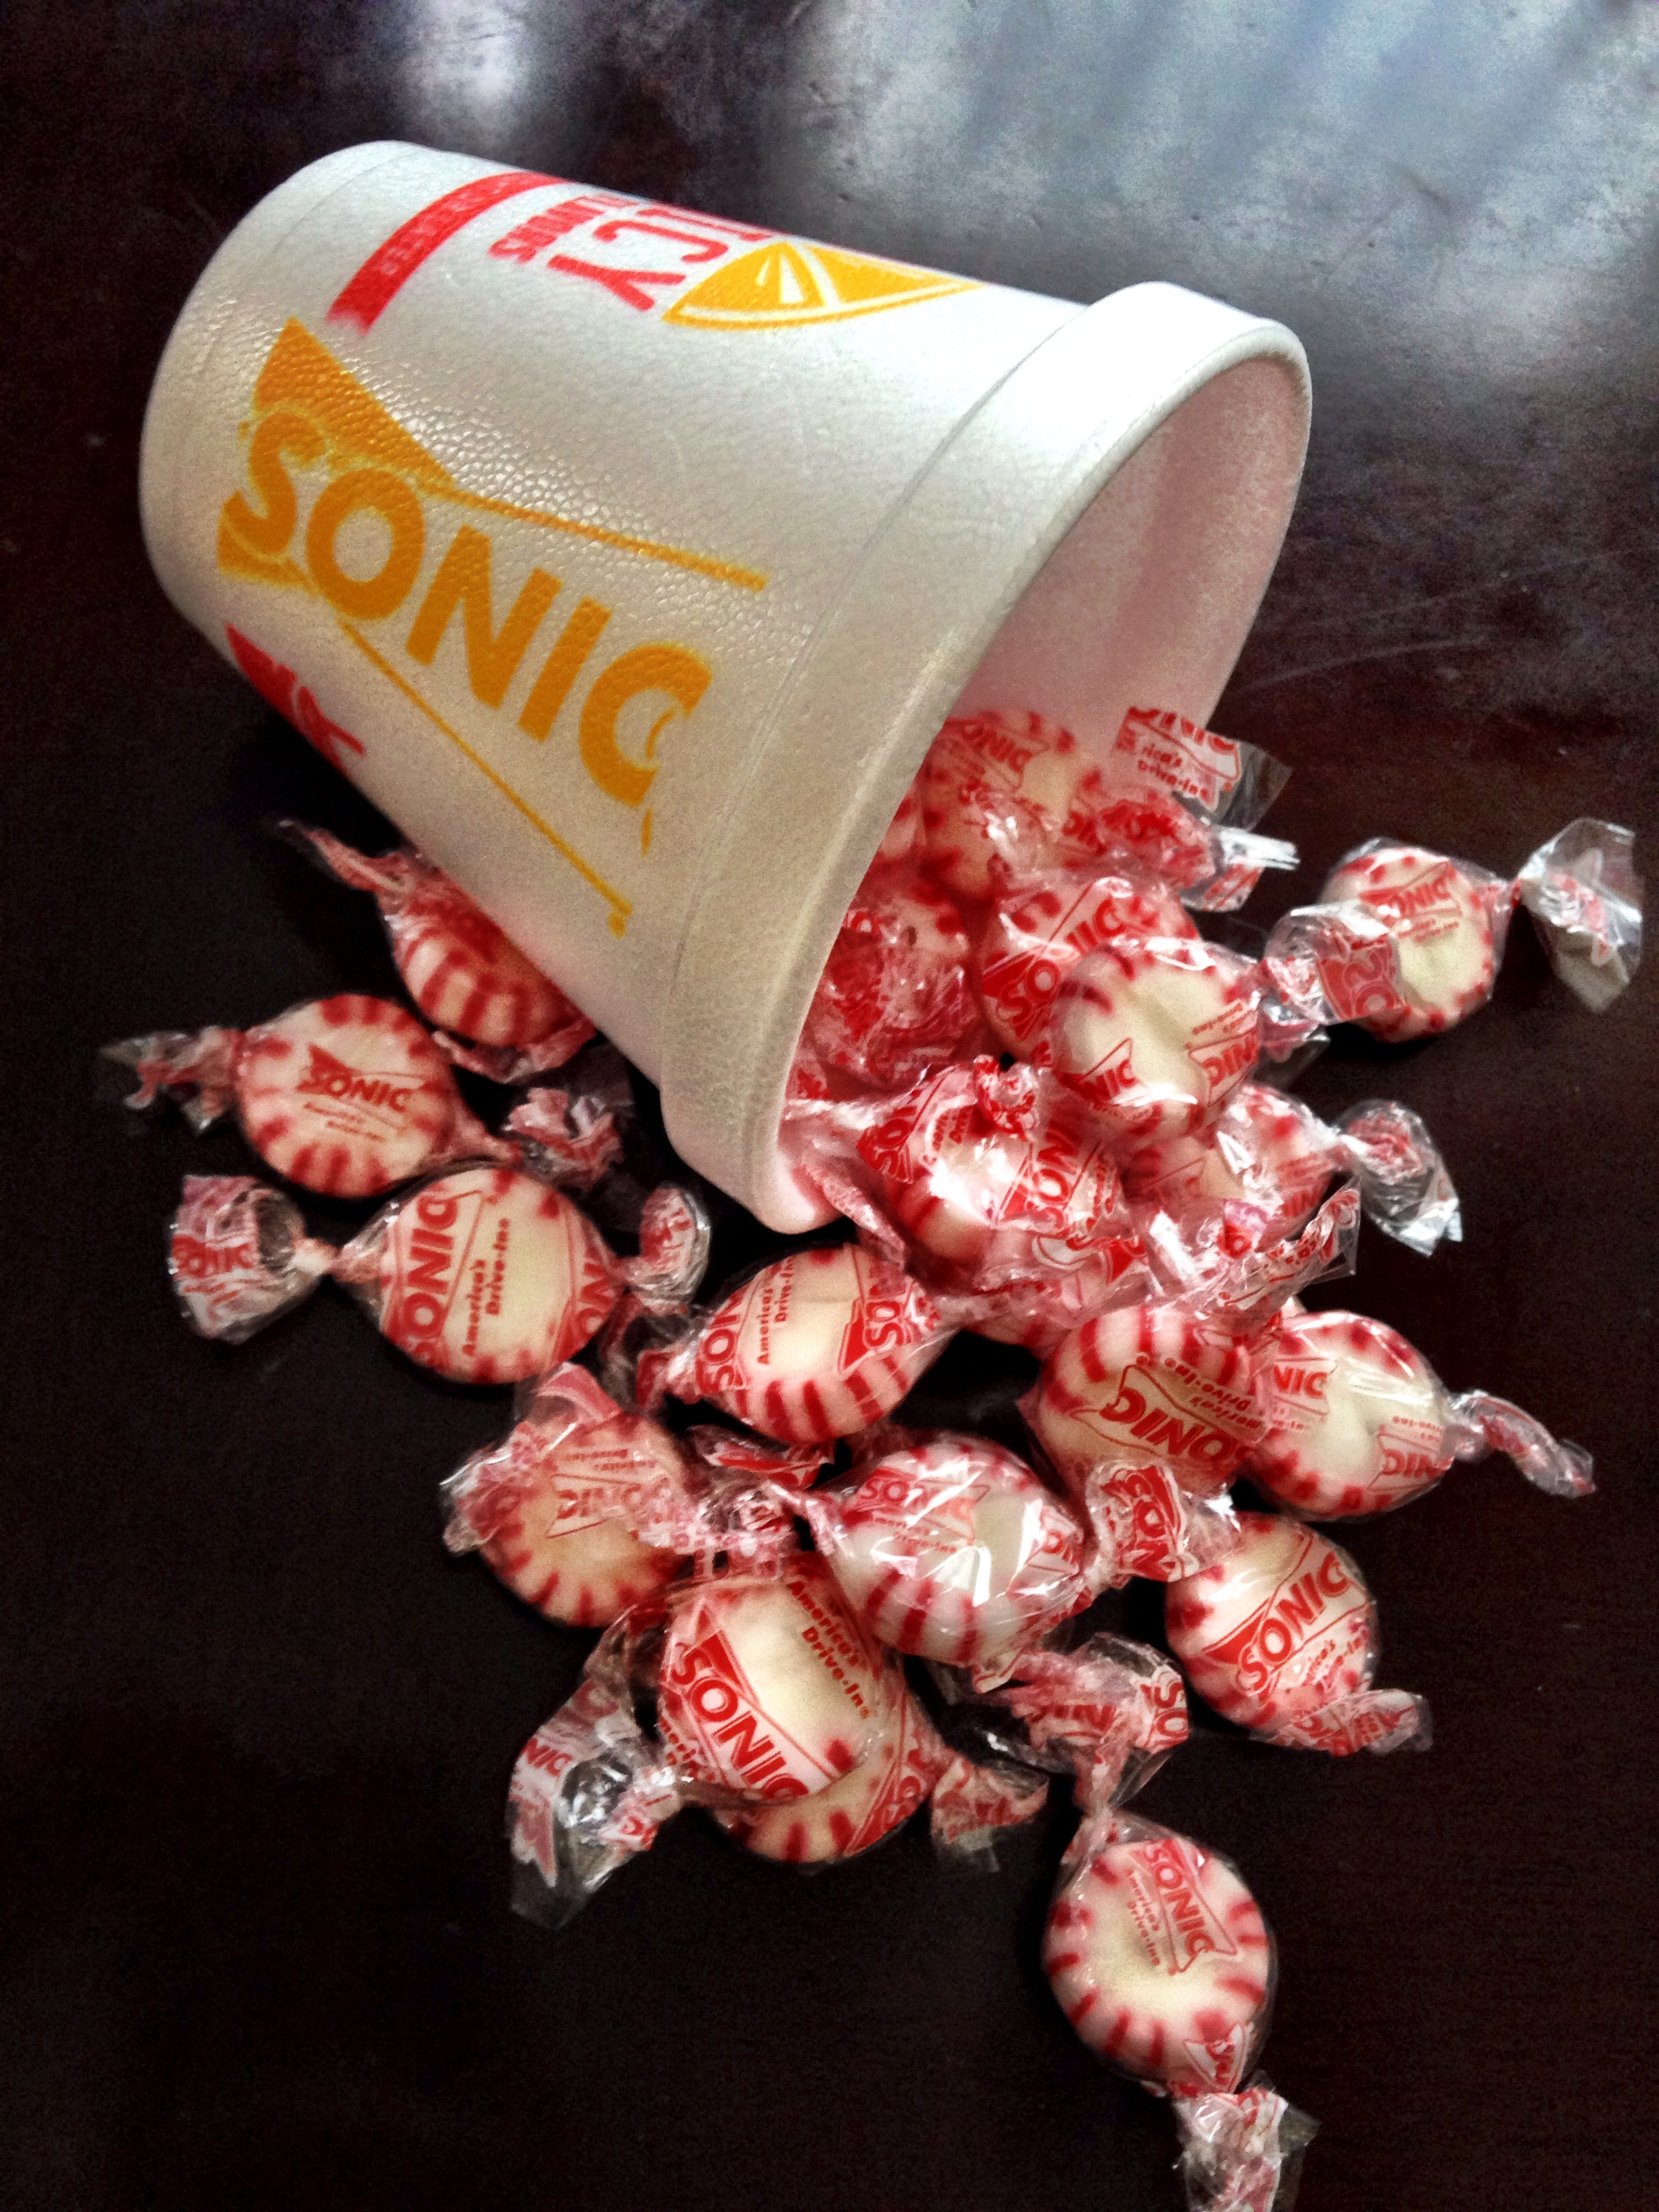 Thanks for the extra mints. I LOVE sonic!